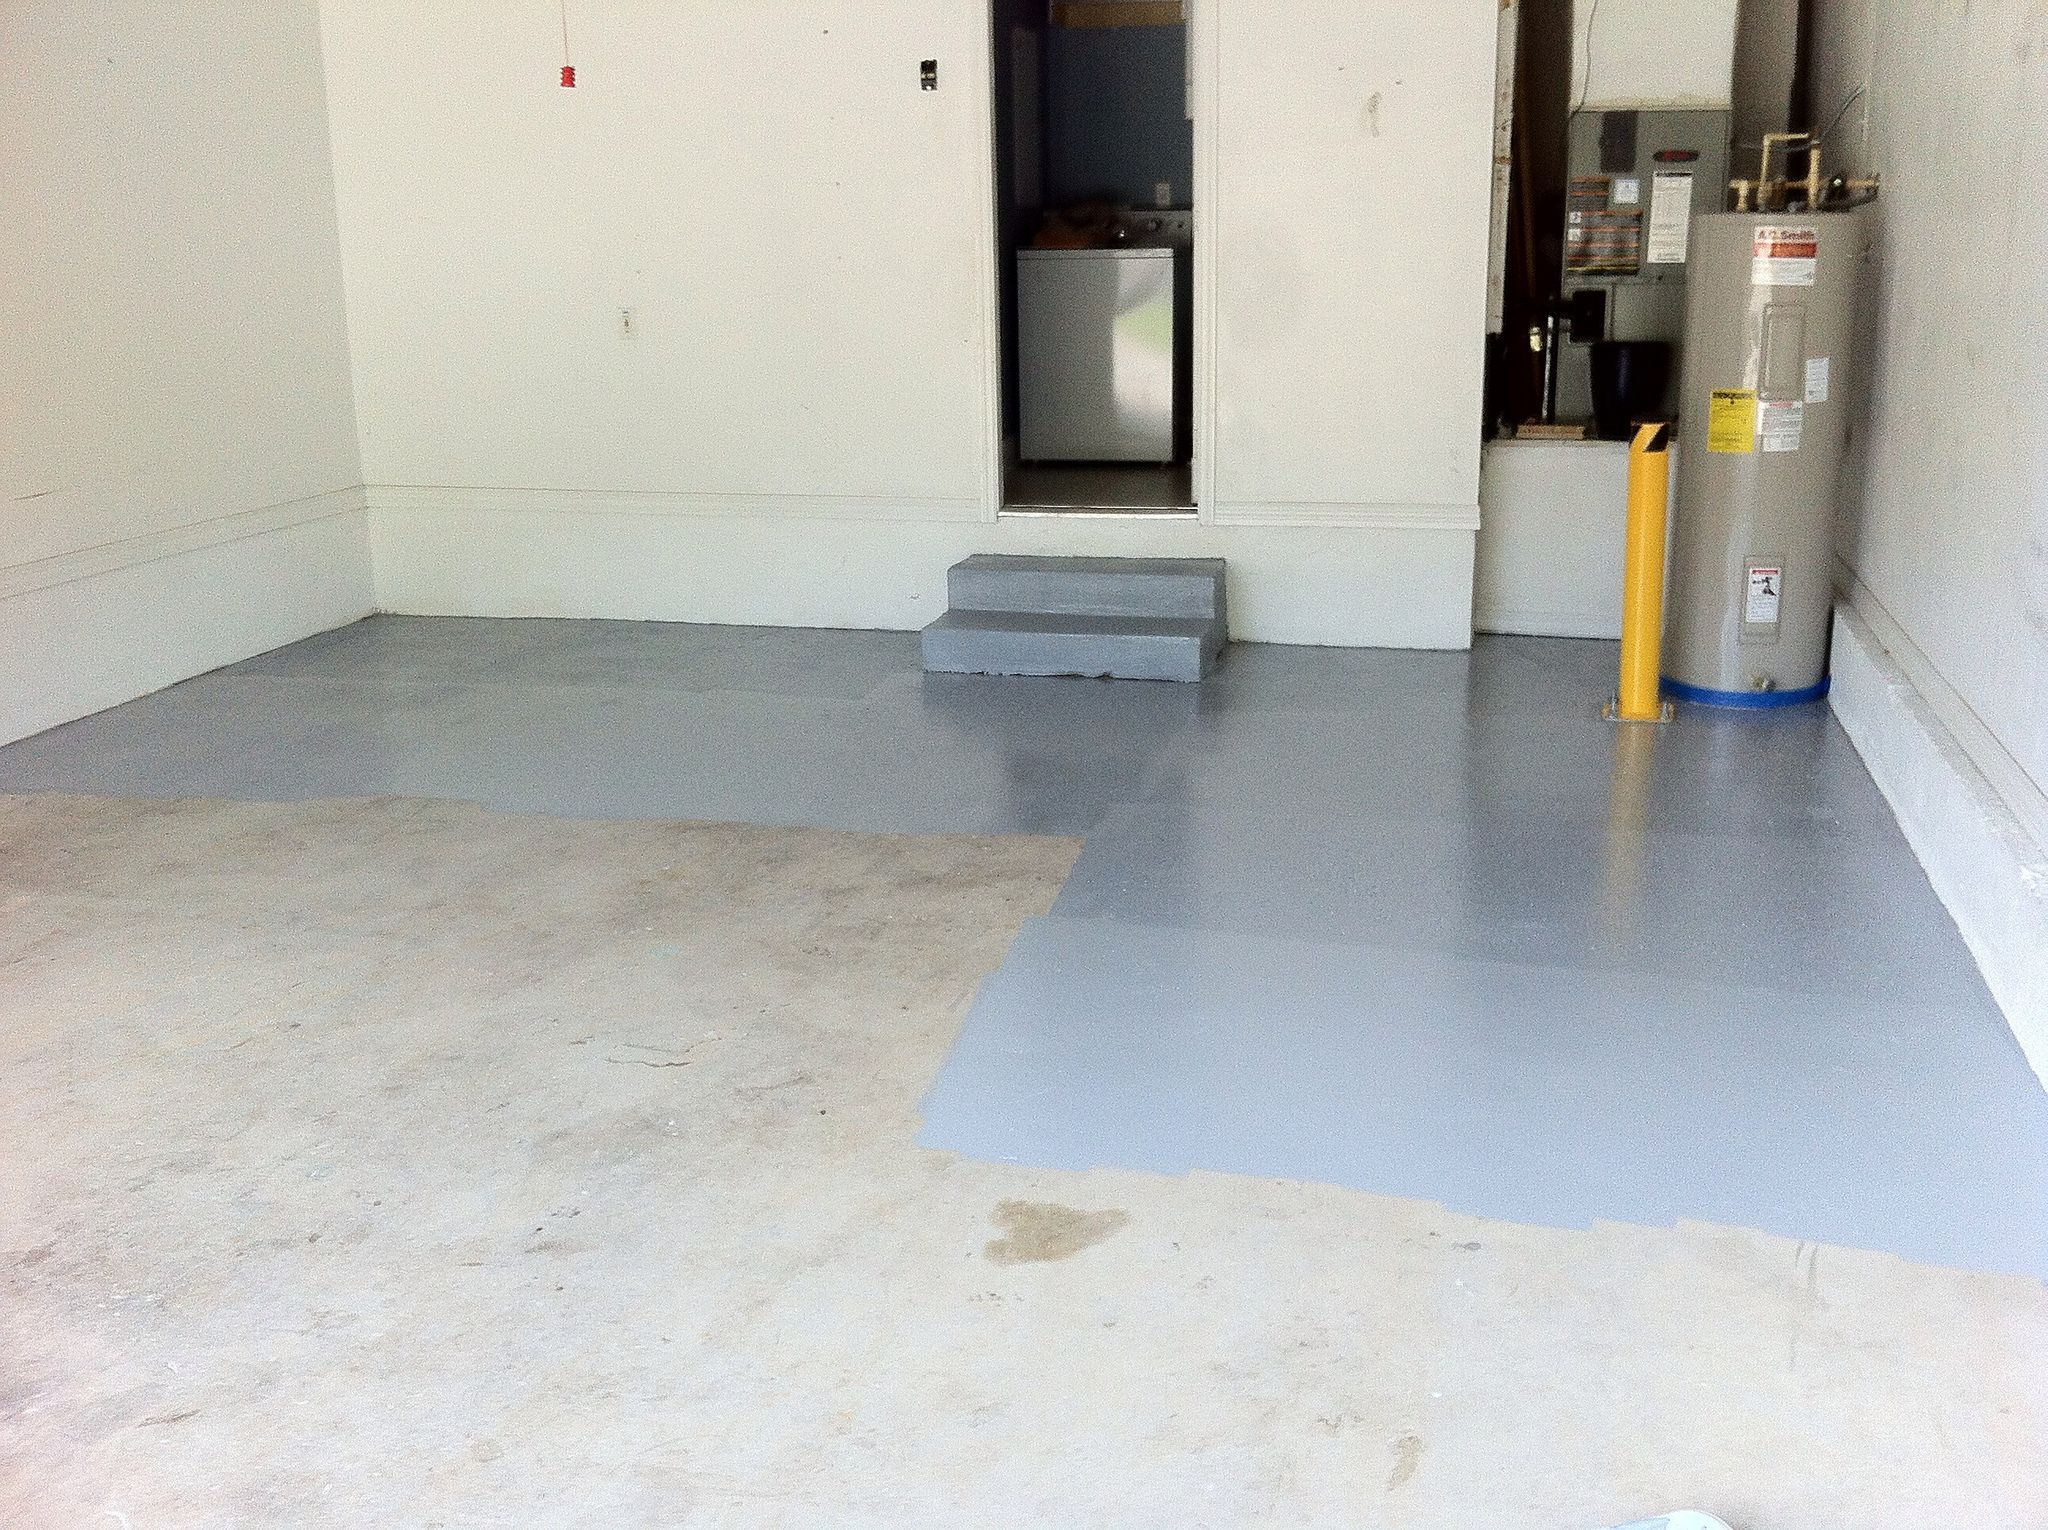 How To Prep A Garage Floor And Apply Epoxy Garage Floor Epoxy Painted Concrete Floors Garage Floor Coatings